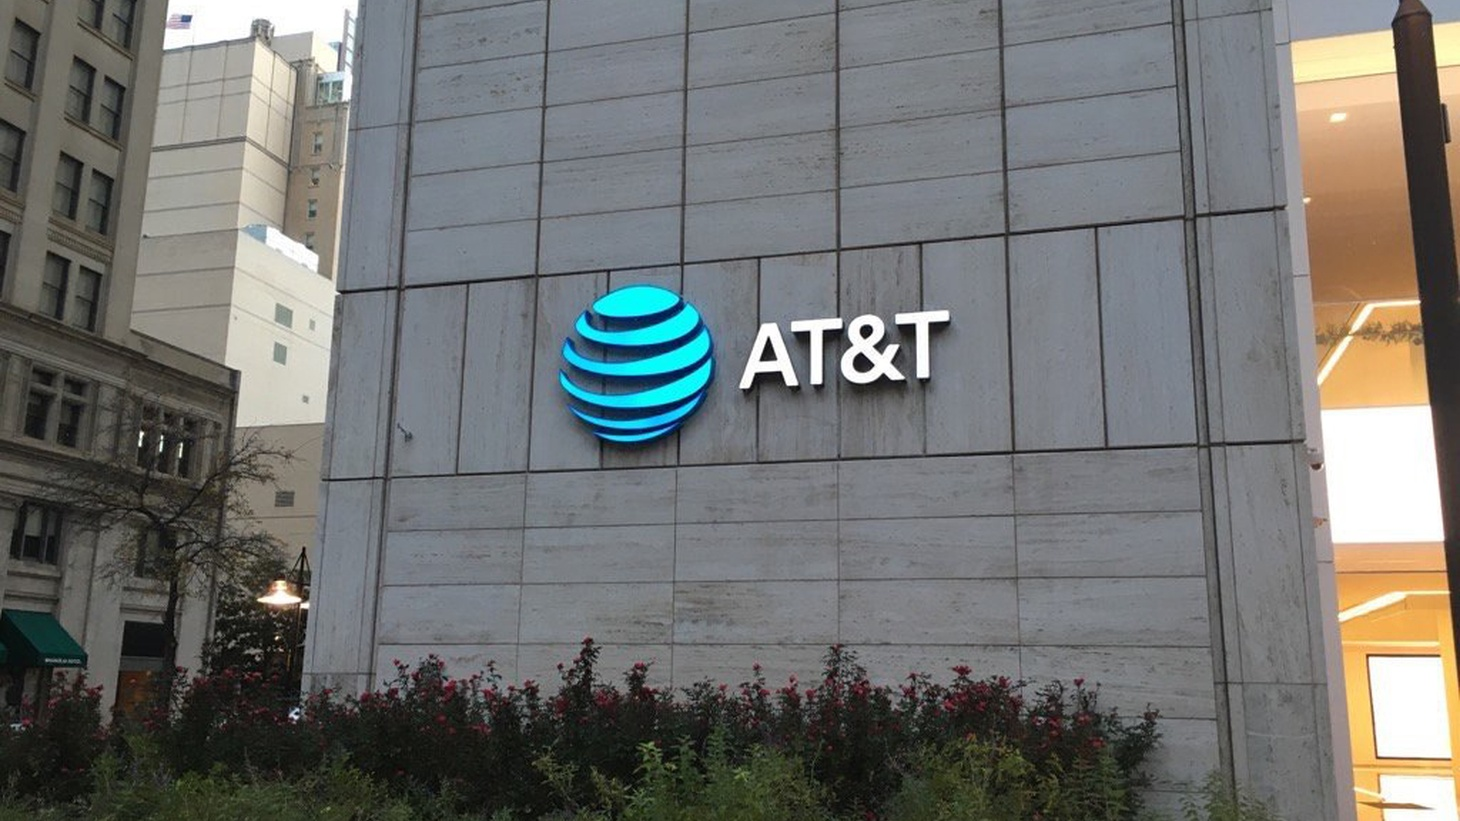 A federal judge Tuesday approved the merger between AT&T and Time Warner. This rebuffs President Trump's efforts to block the $85 billion deal.